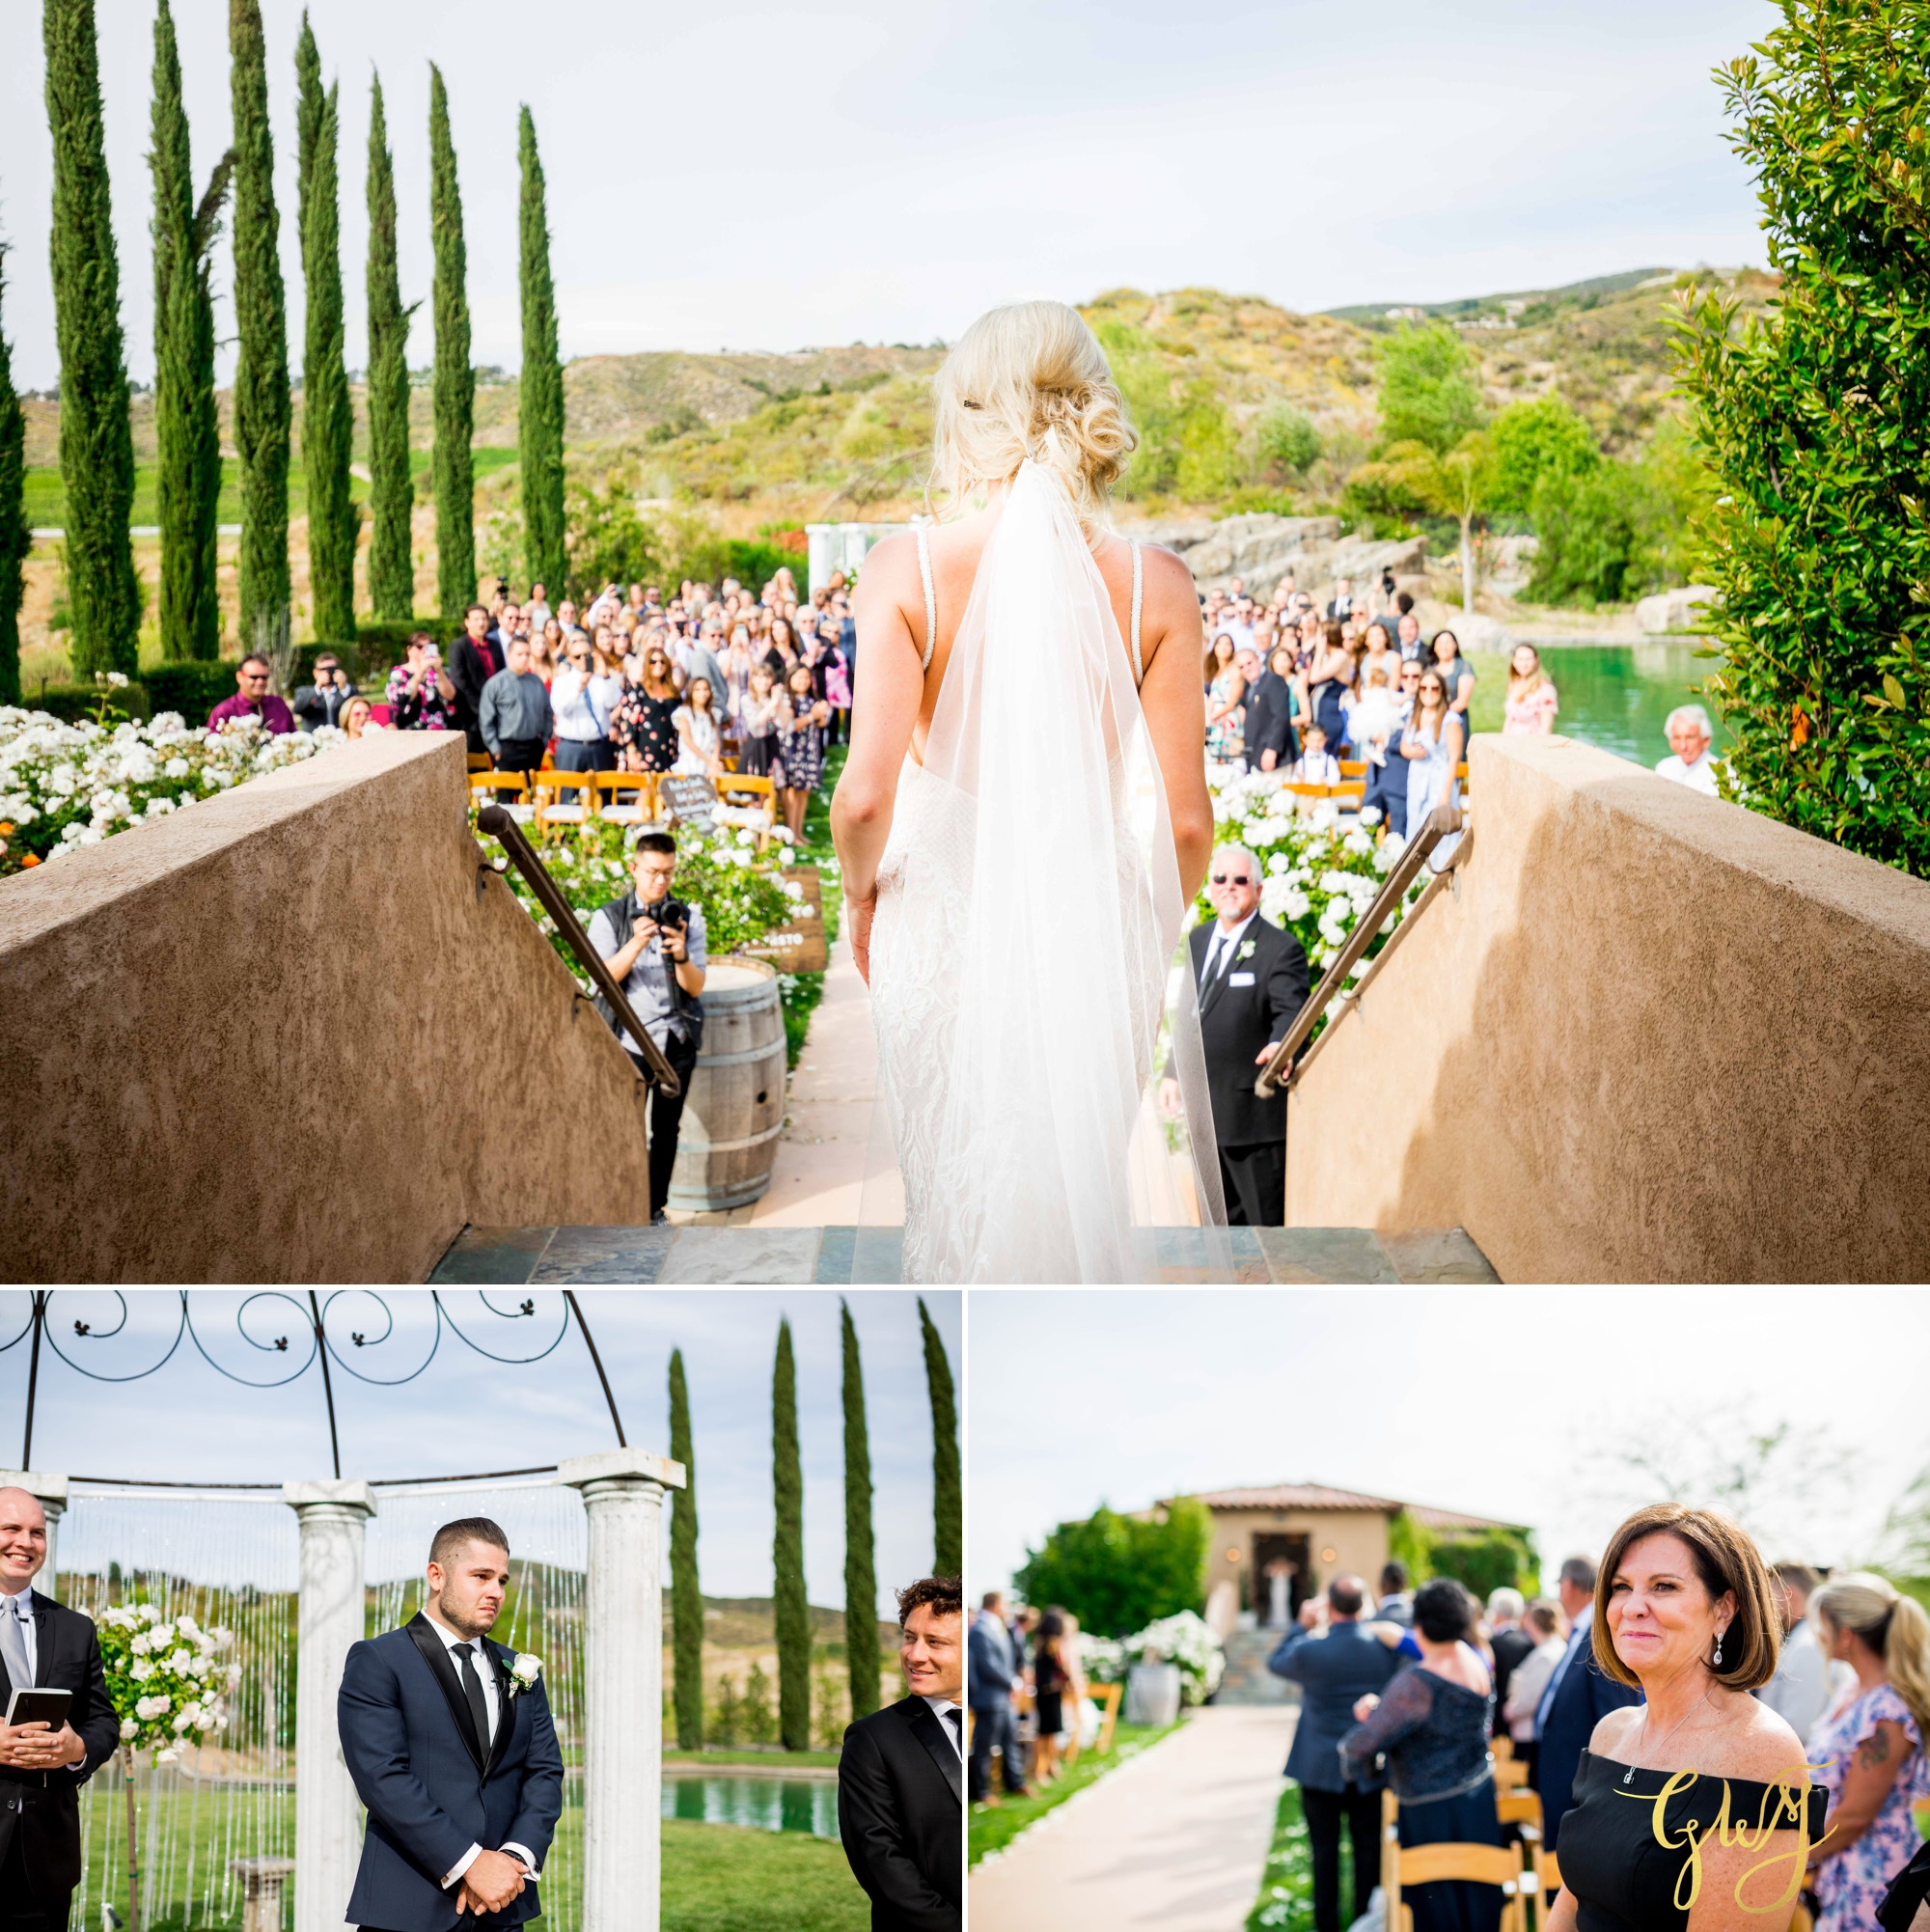 Kristen + Krsto's Romantic Temecula Winery Spring Wedding by Glass Woods Media 27.jpg